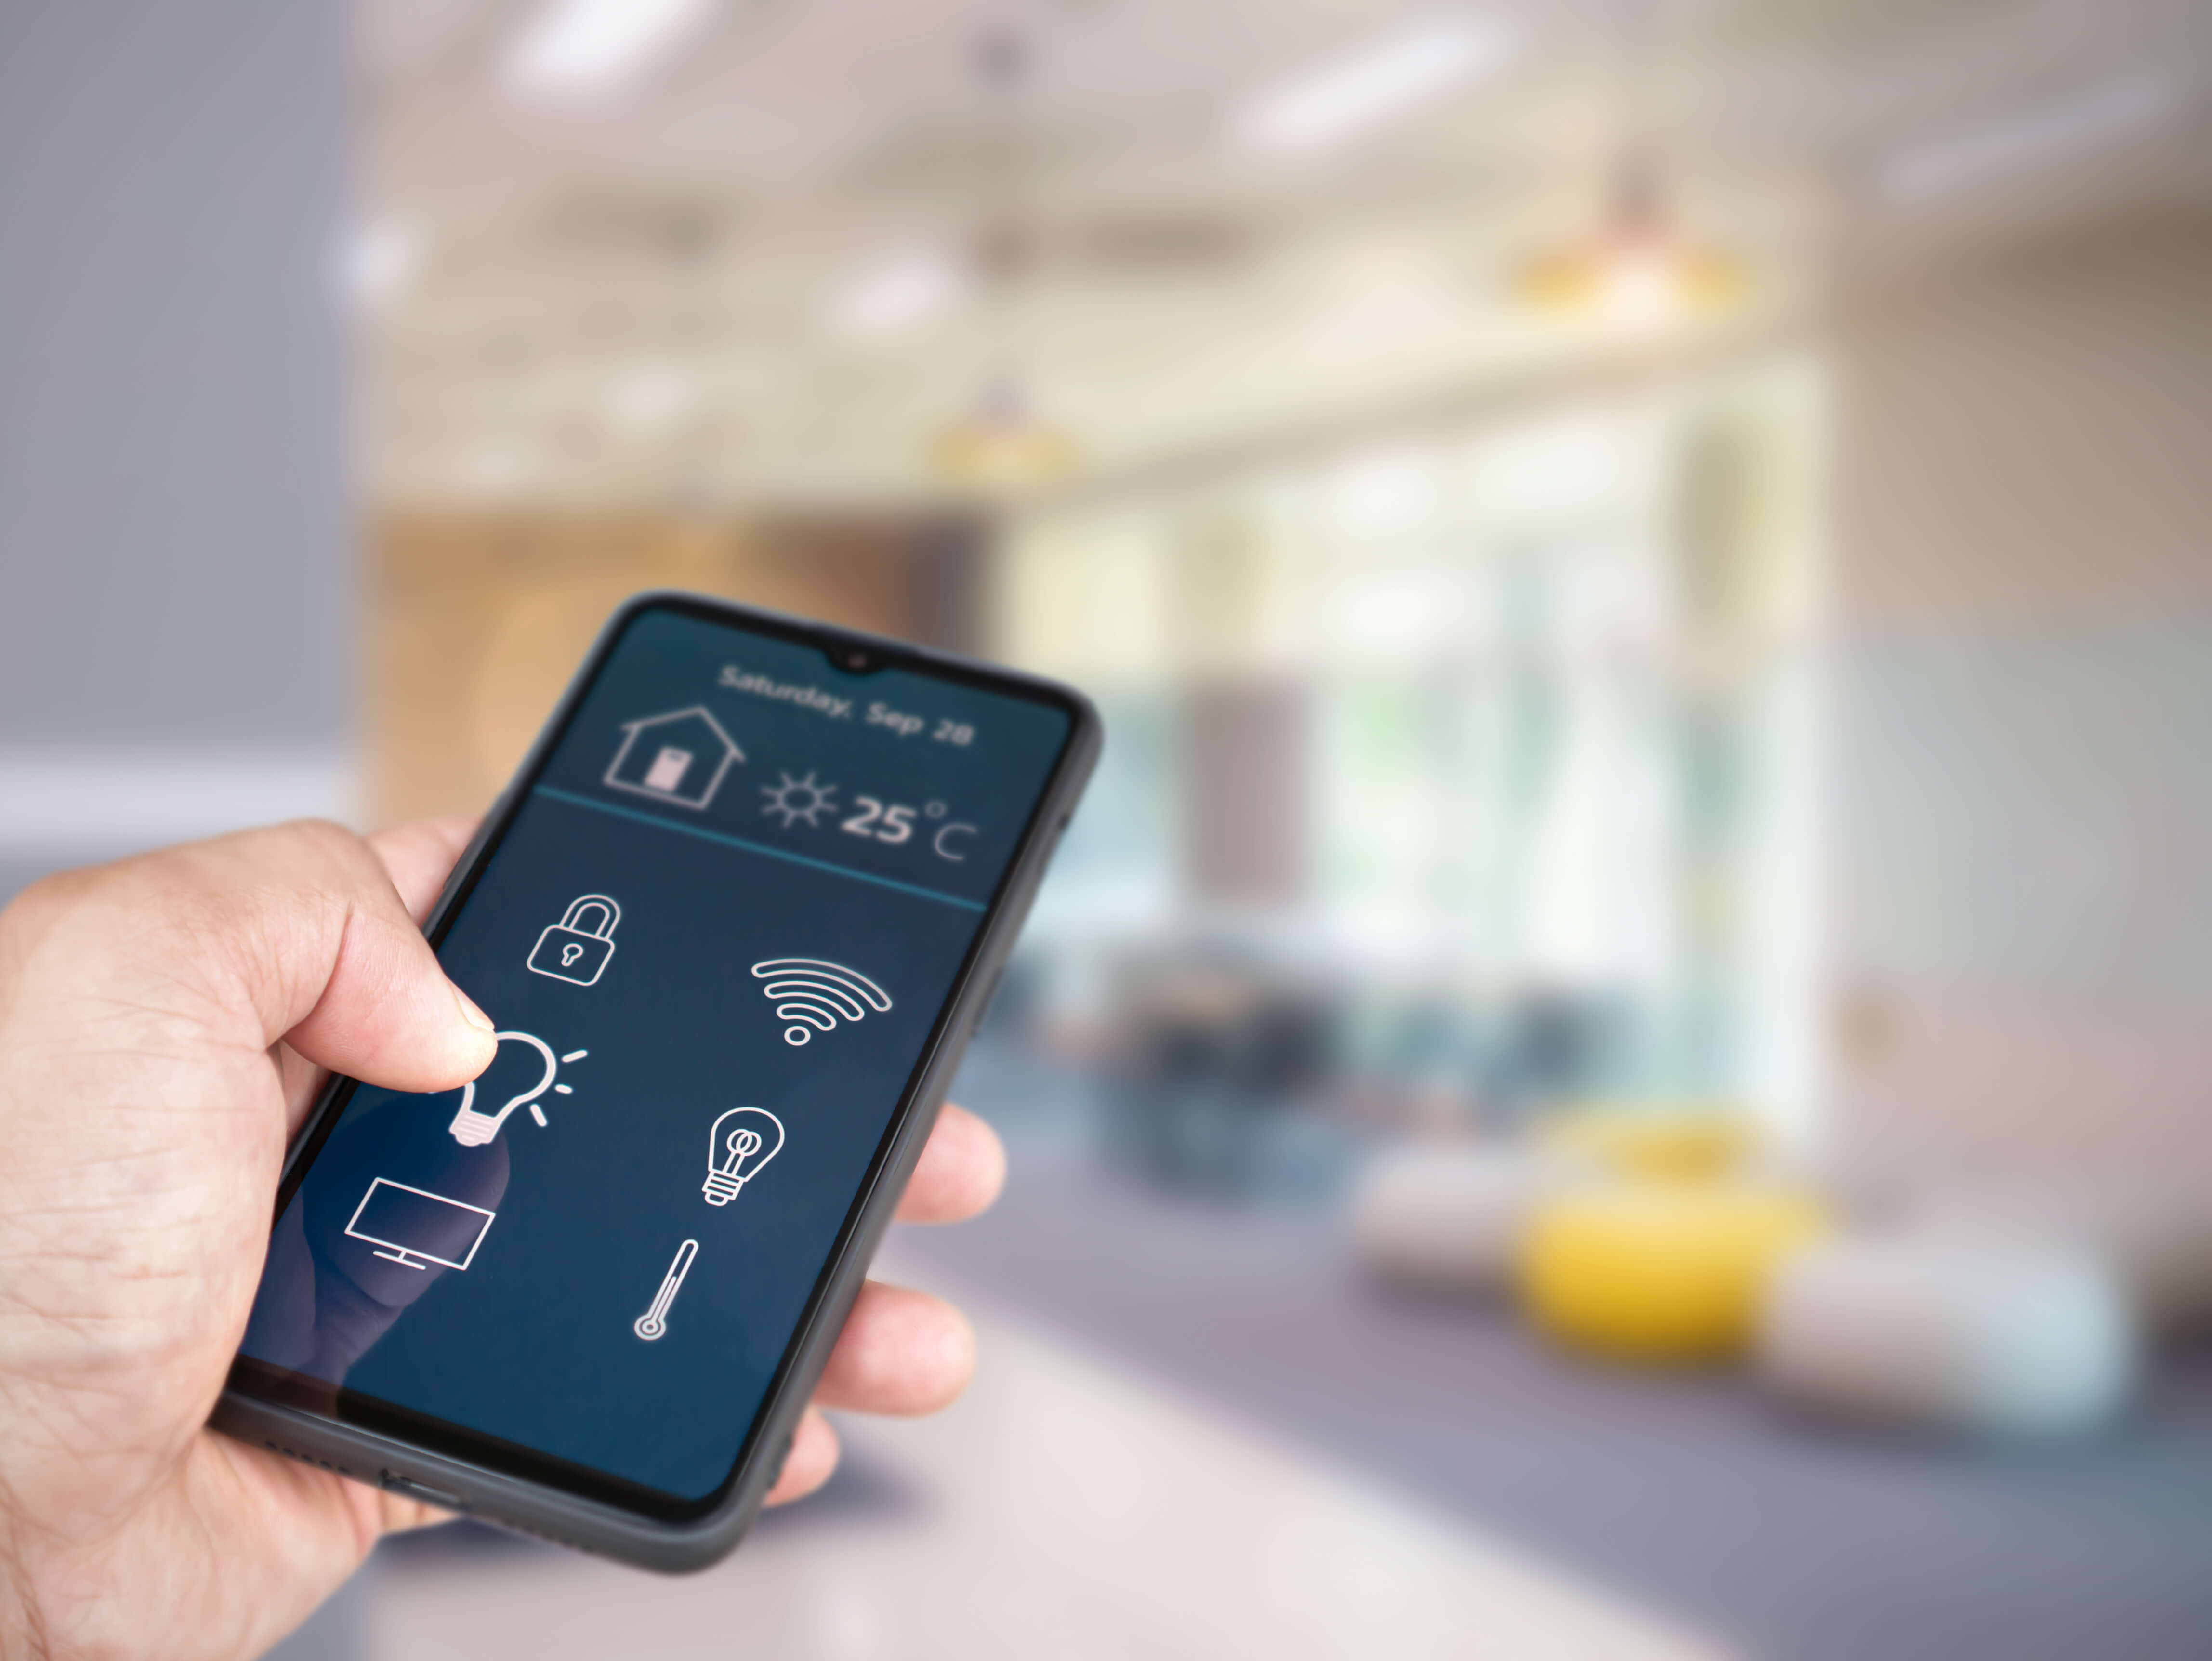 Smart phone app controlling connected home